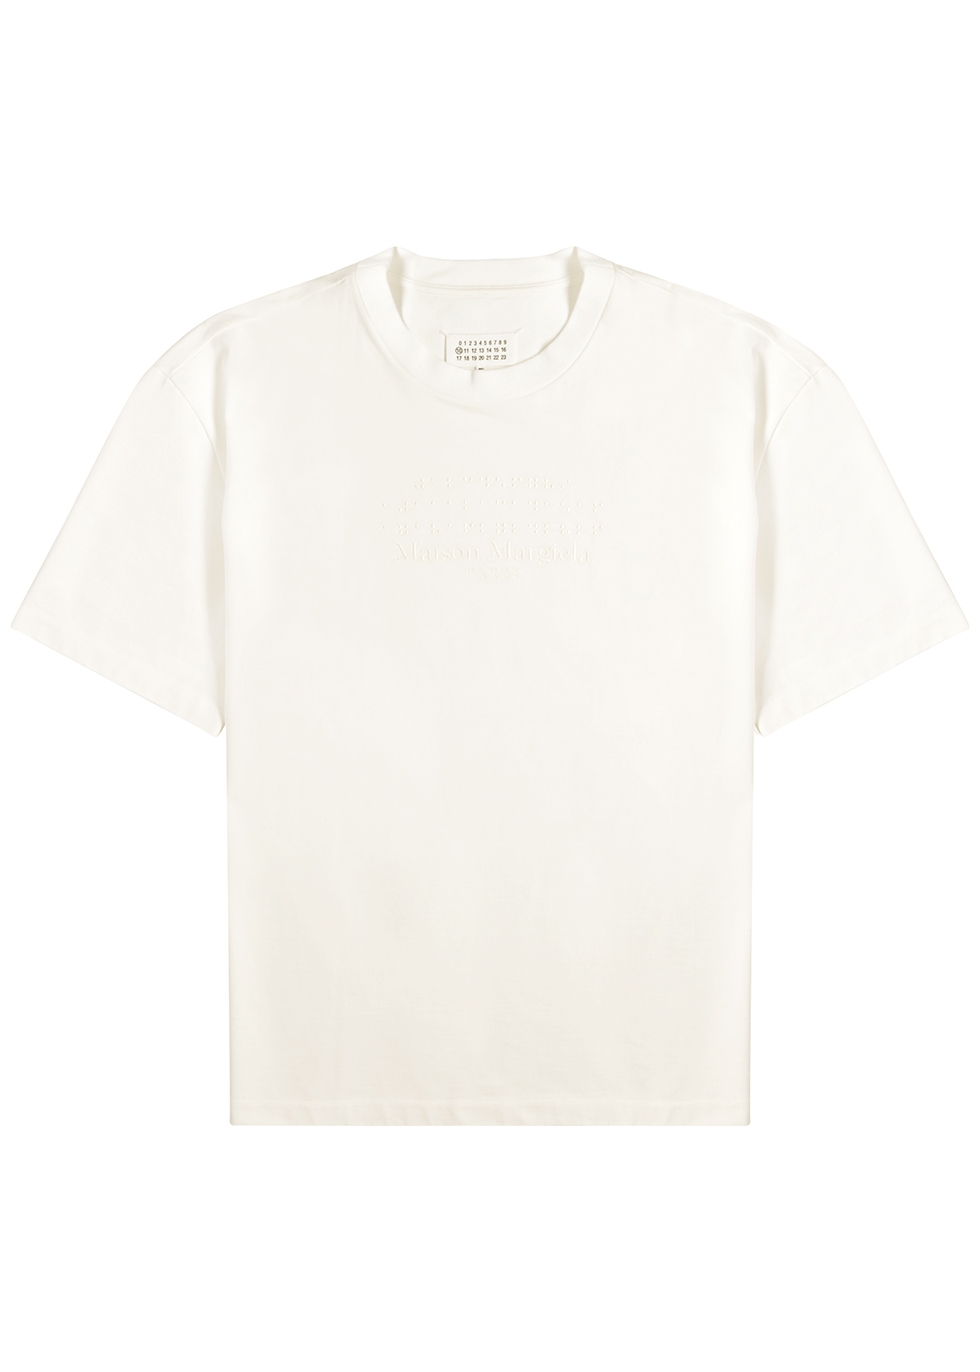 White embroidered cotton T-shirt